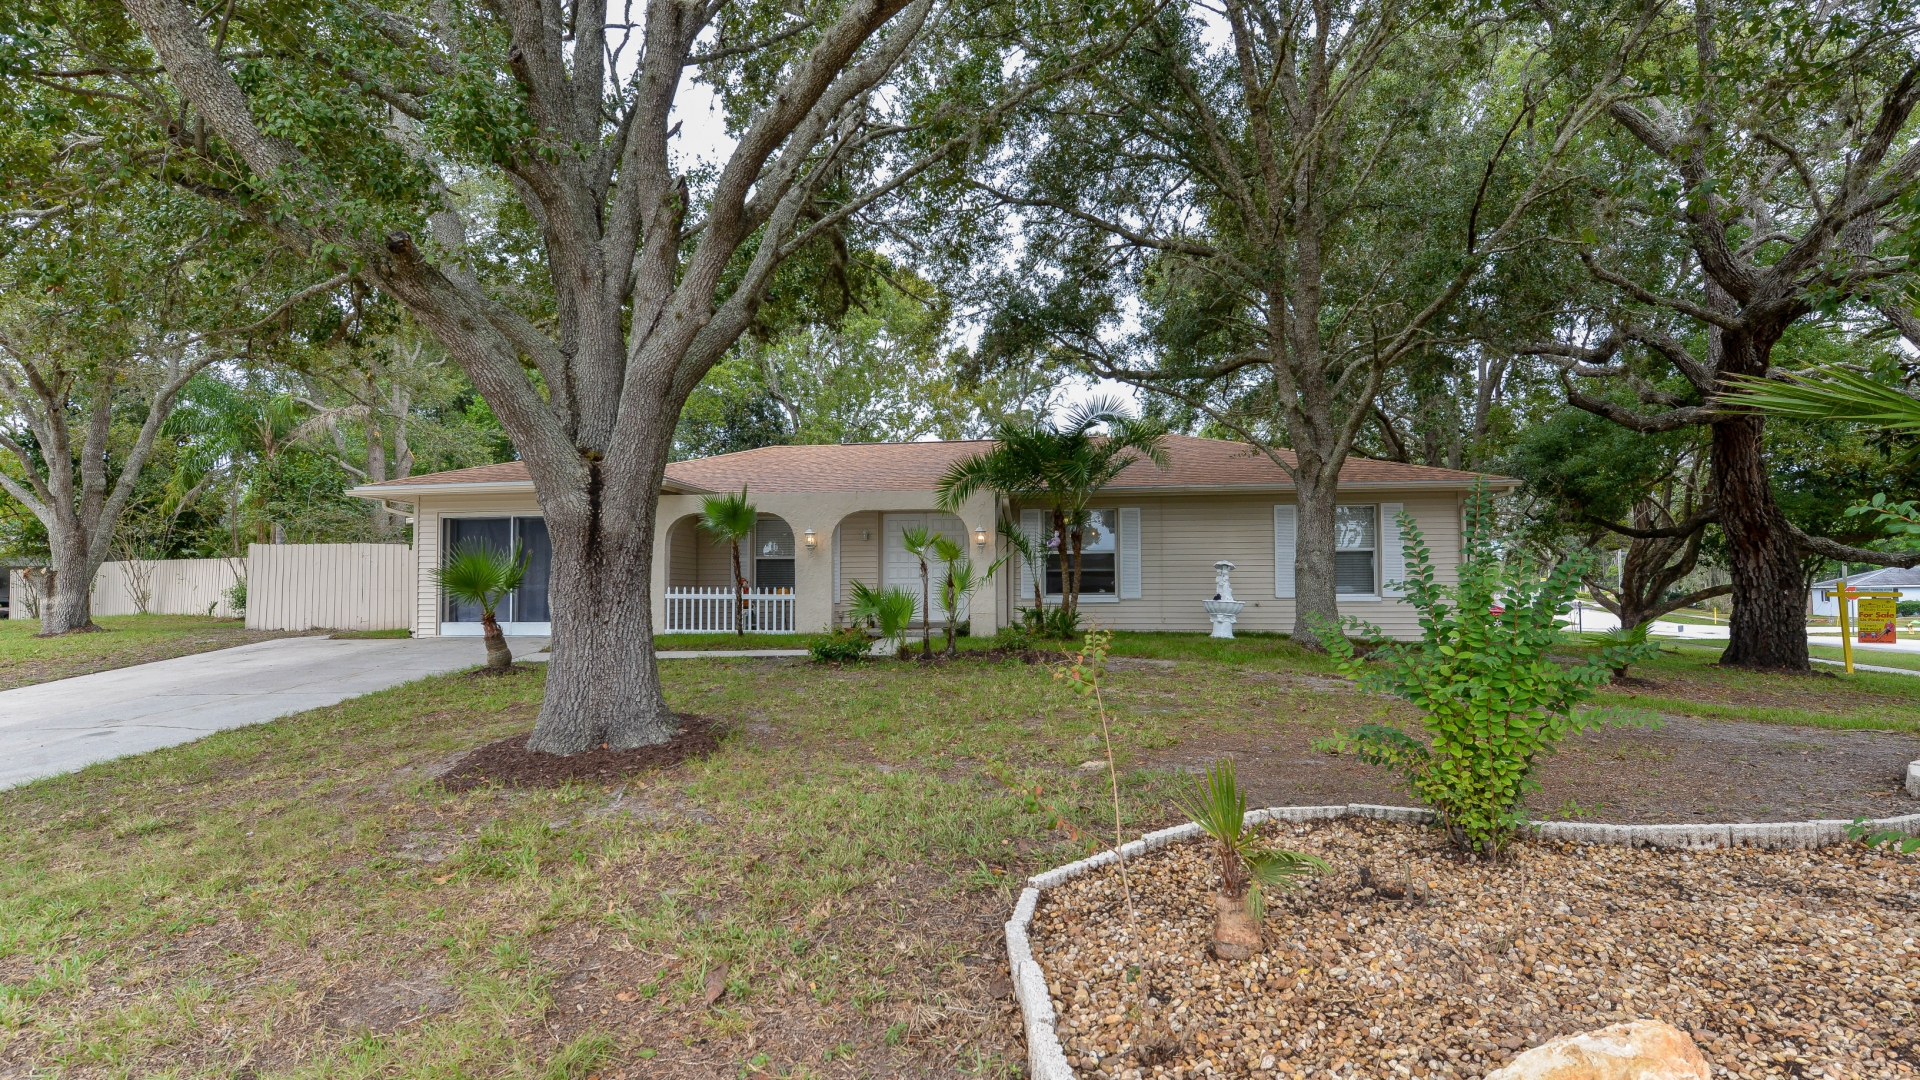 9171 Sewell Ln Spring Hill Fl 34608 4 Bed 2 Bath